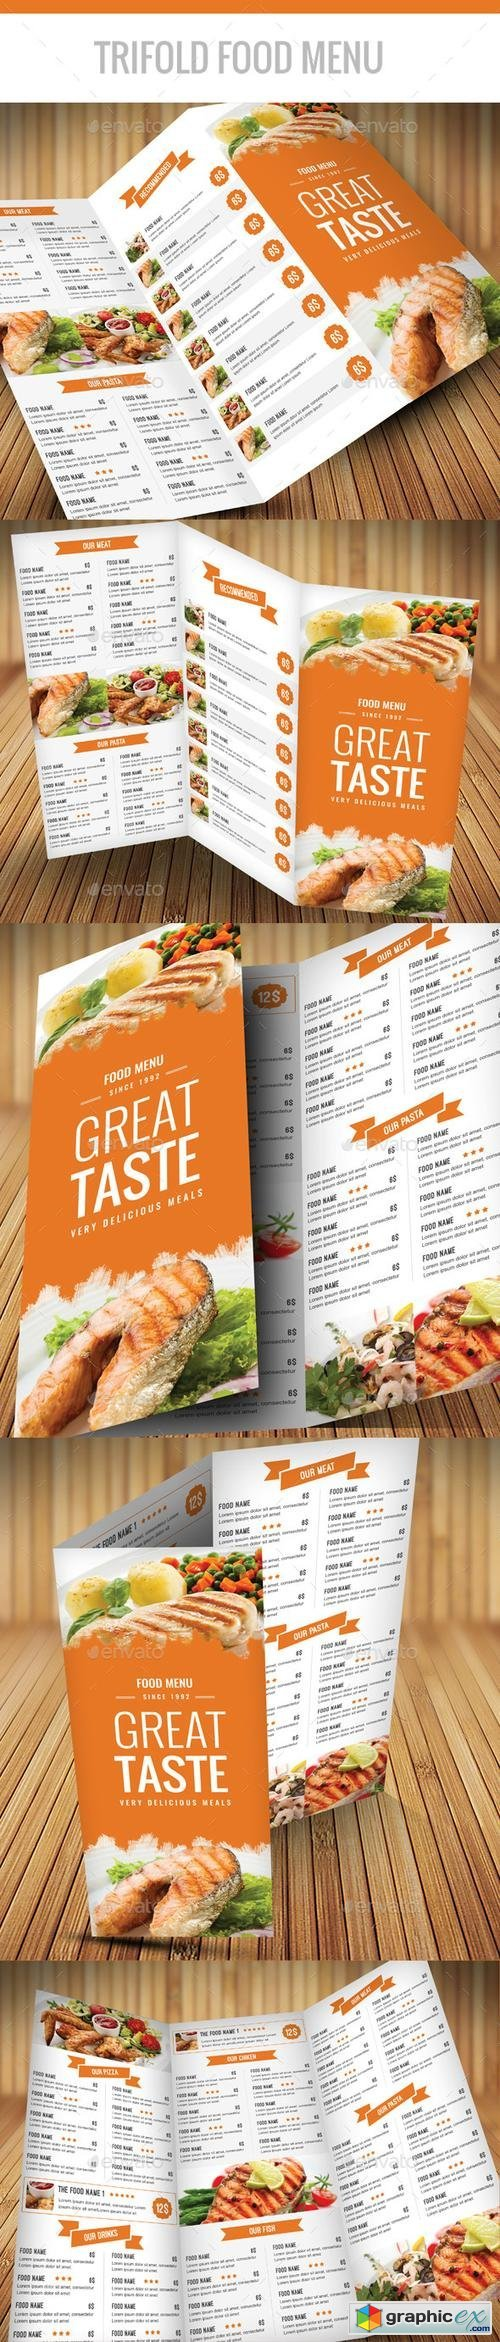 Trifold Food Menu A4